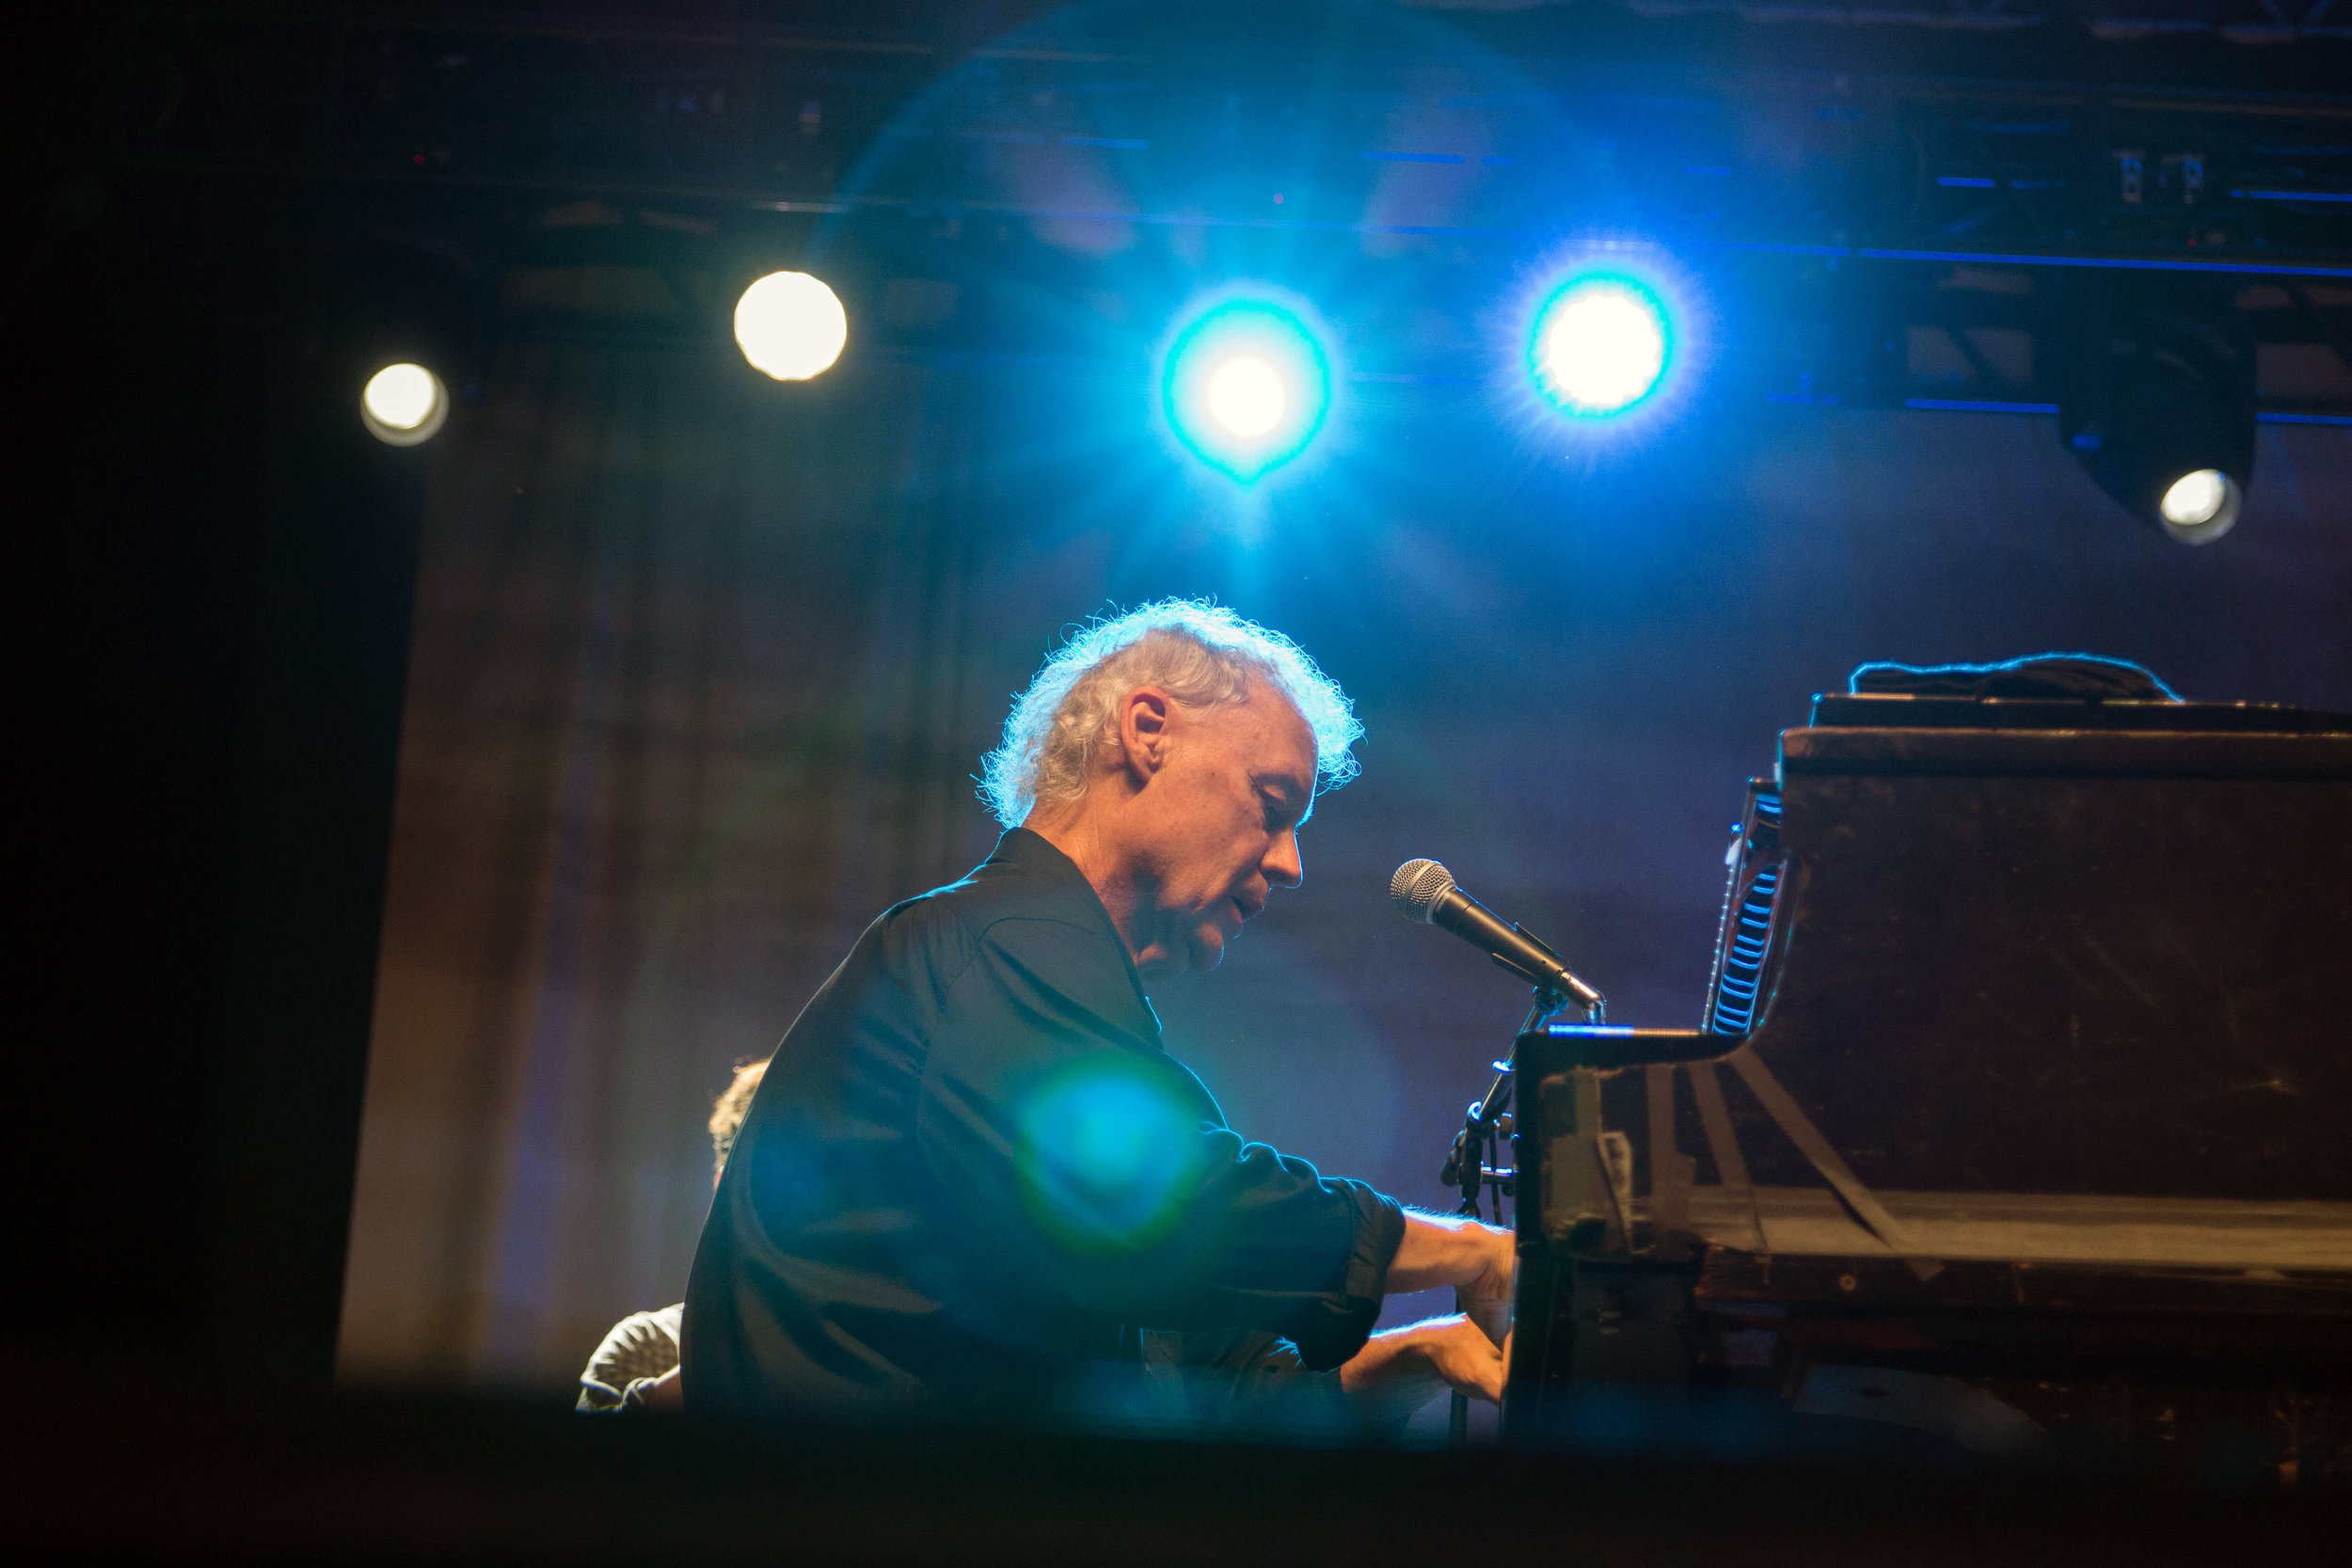 BRUCE HORNSBY - @ CANAL SHORES | AUG 11, 2019